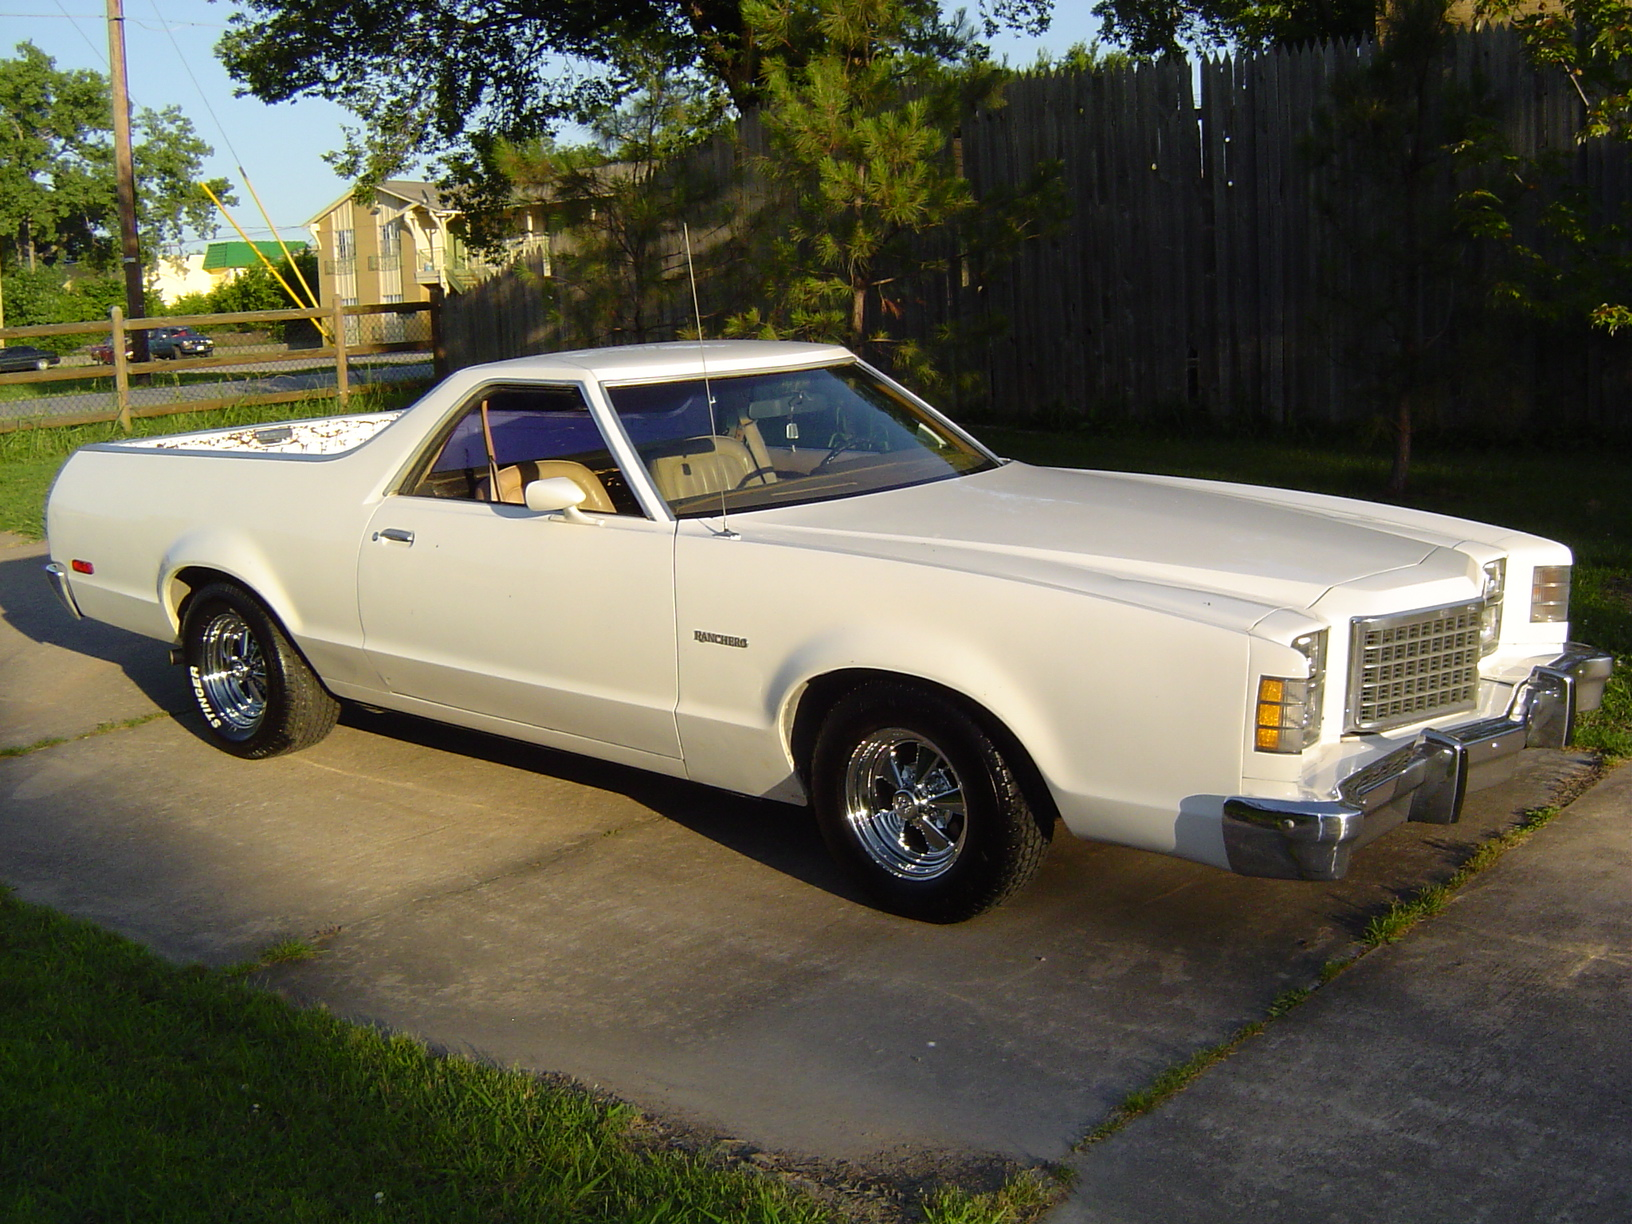 1979 ford ranchero 4000 automatic pictures - 1979 Ford Ranchero